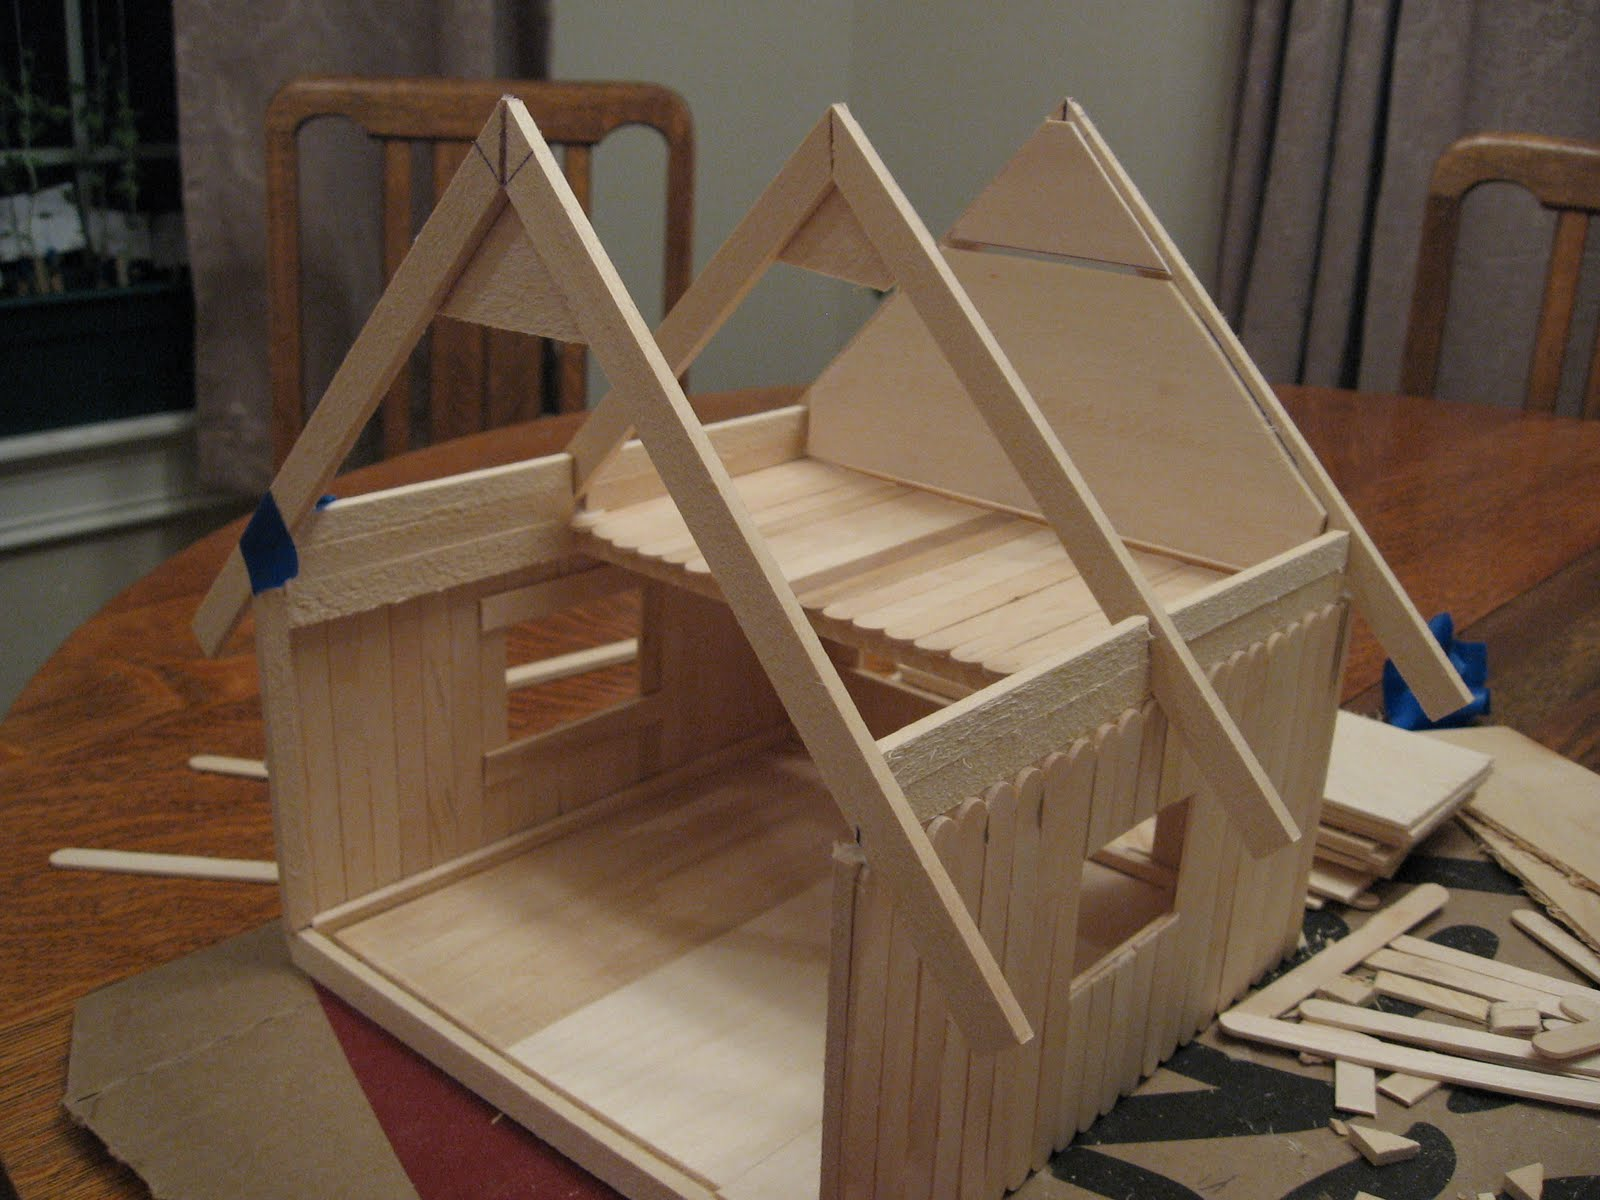 Almost unschoolers basswood and popsicle stick doll house man of almost unschoolers basswood and popsicle stick doll house man of the house style jeuxipadfo Gallery